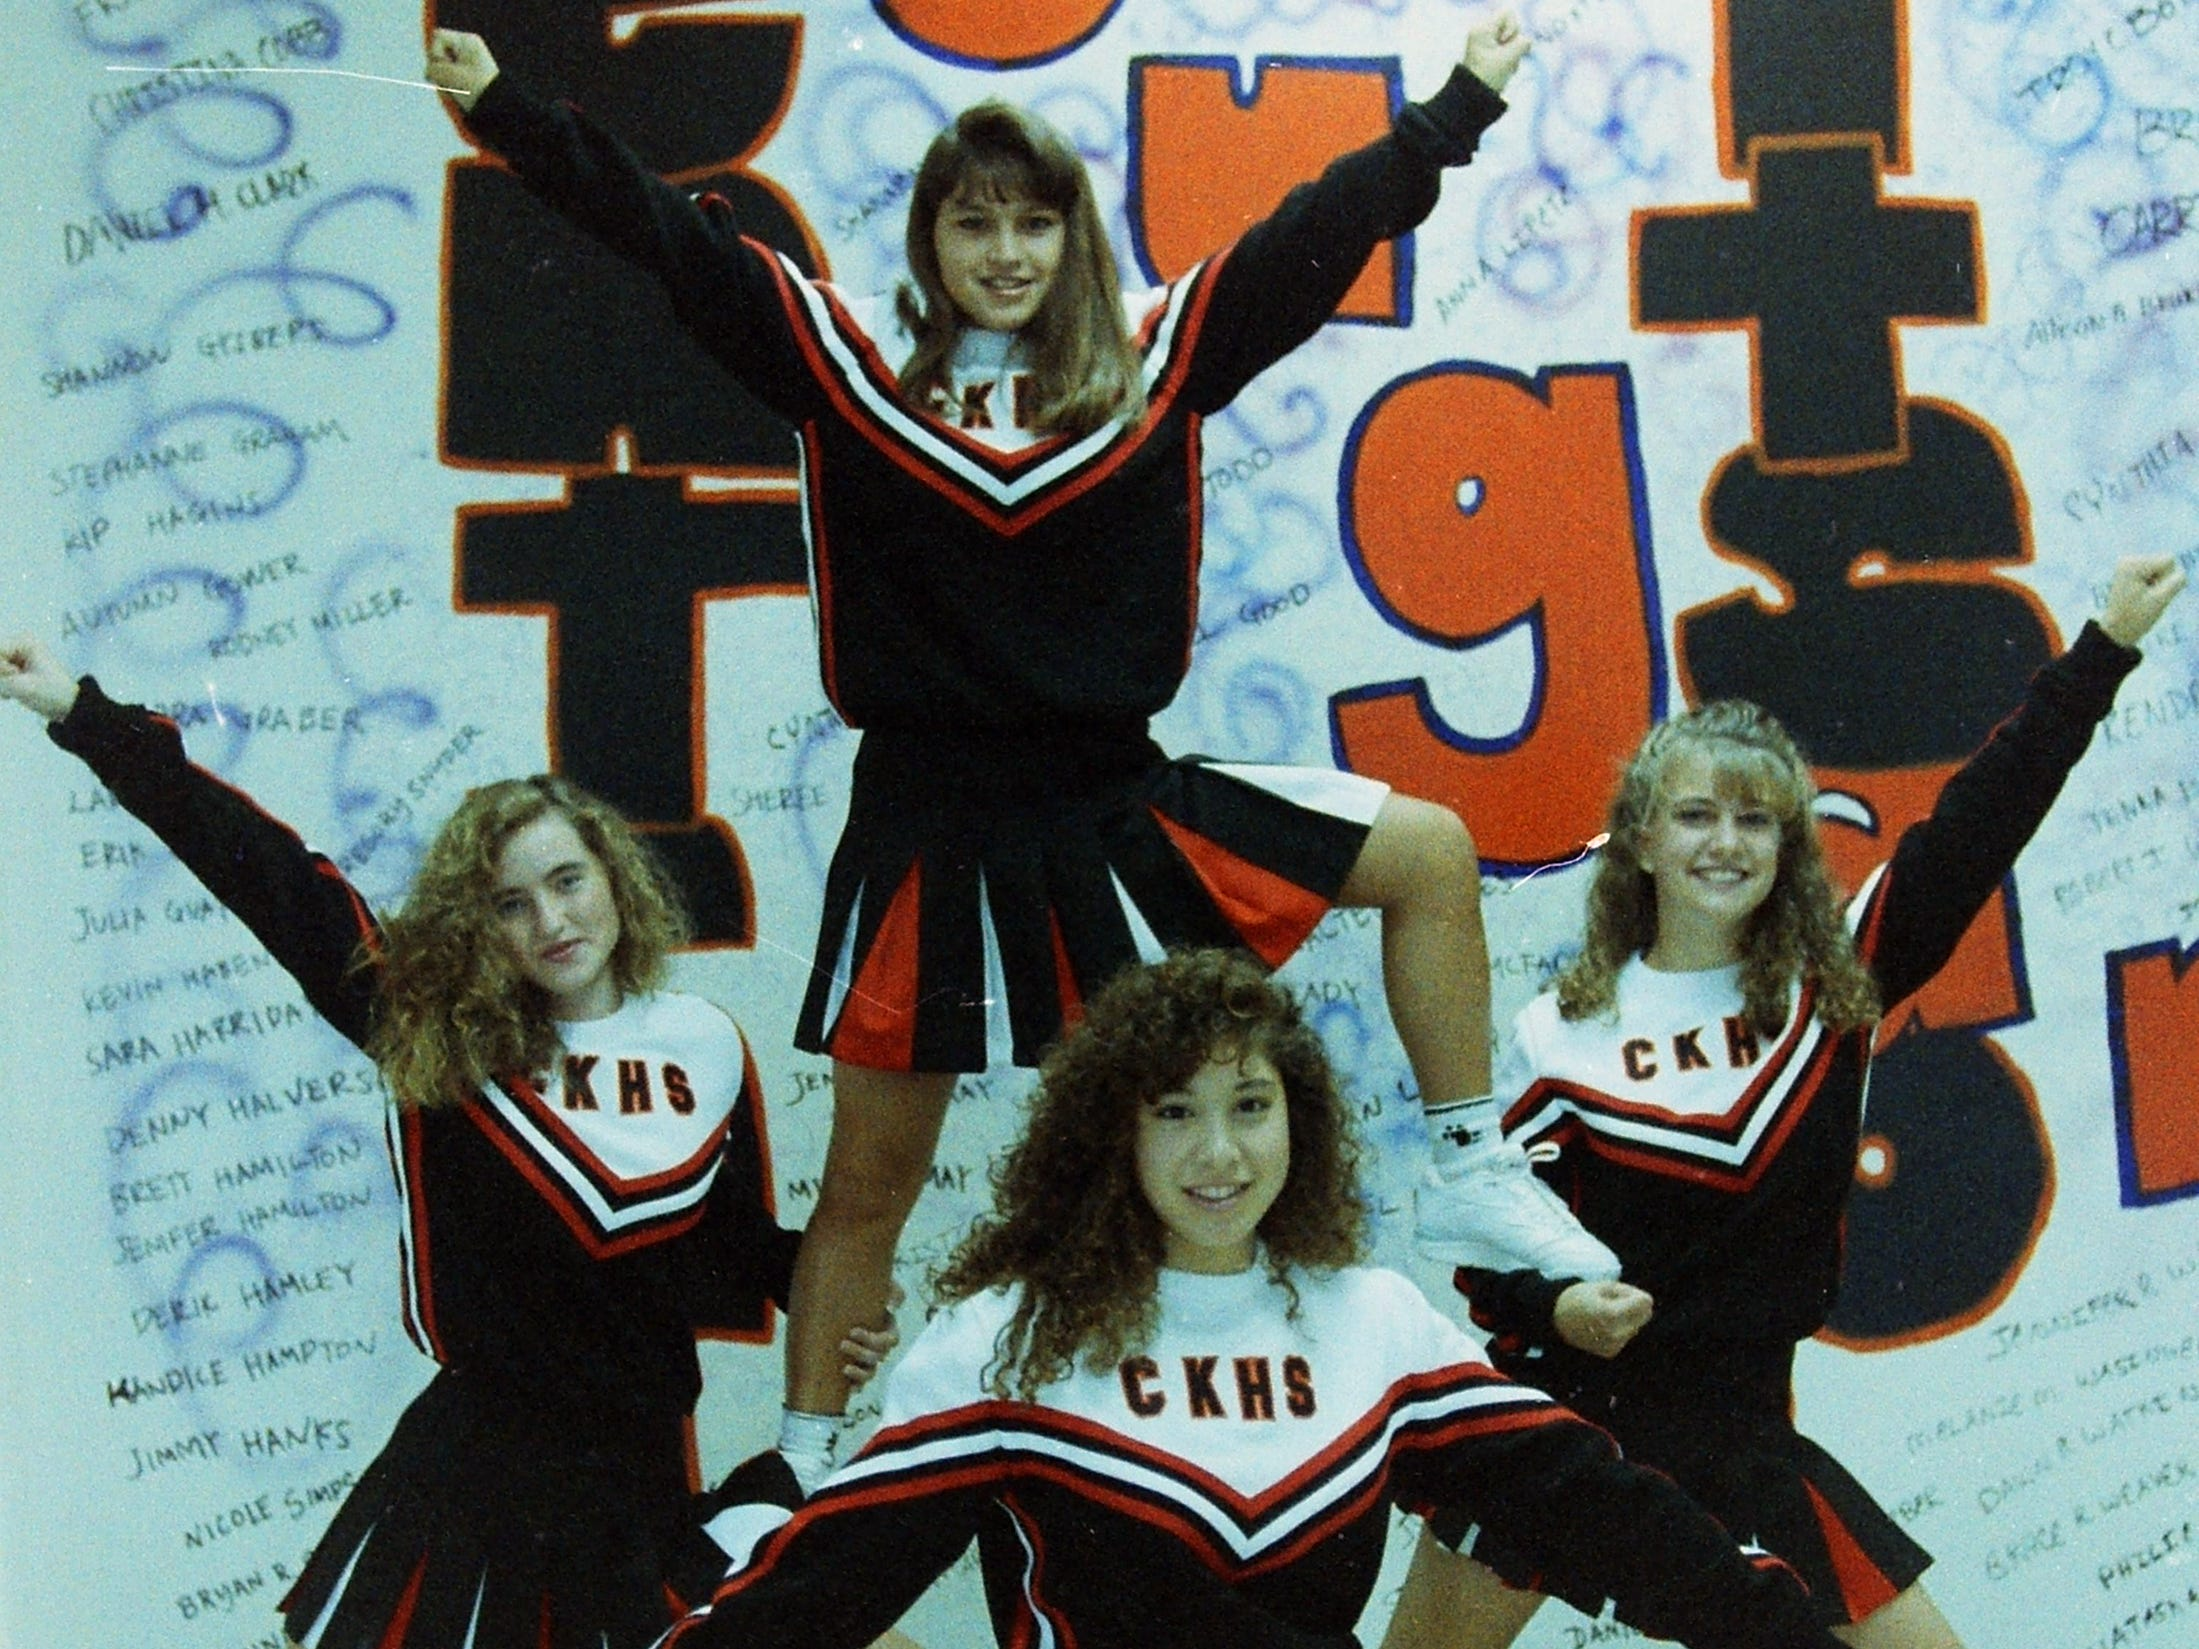 08/30/91